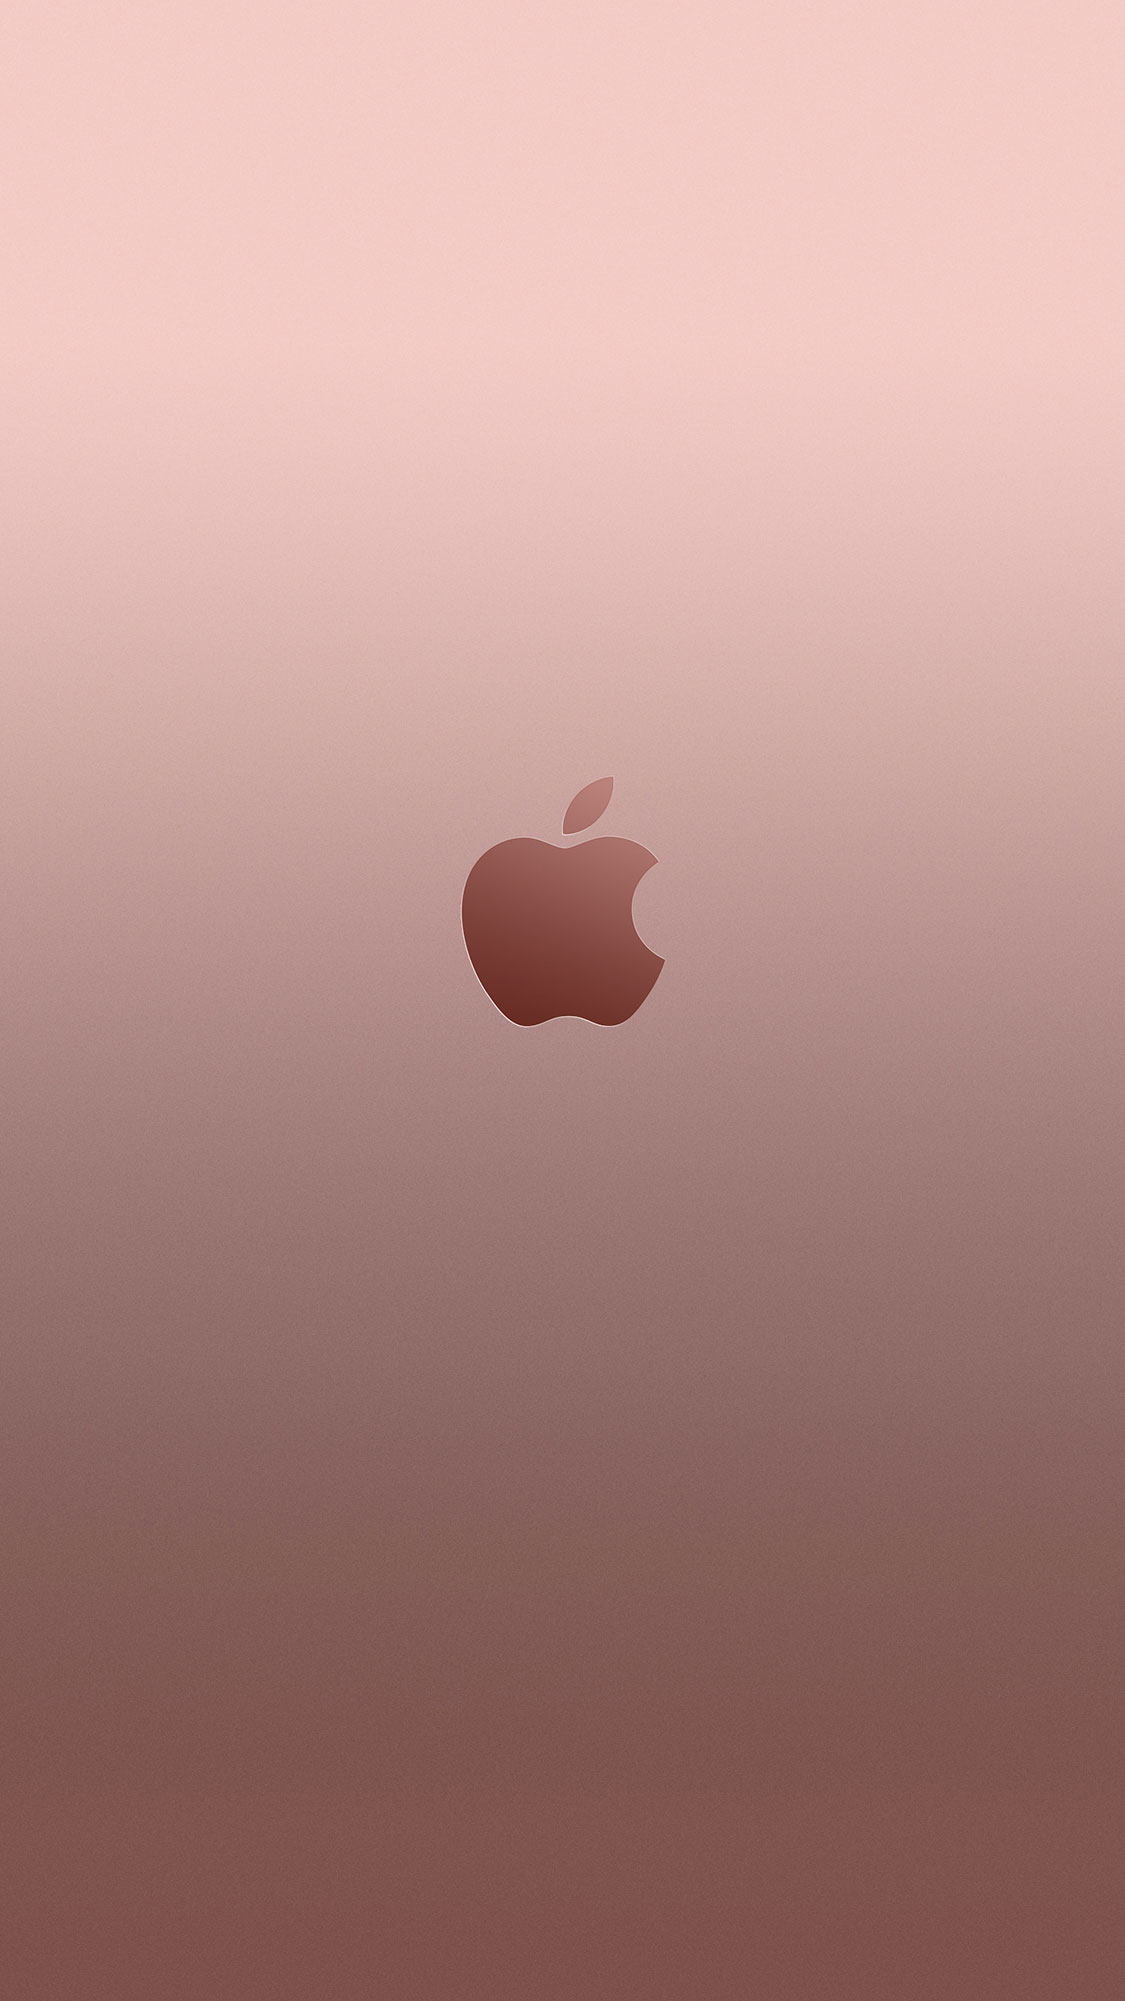 ipad retina wallpaper graphic design search